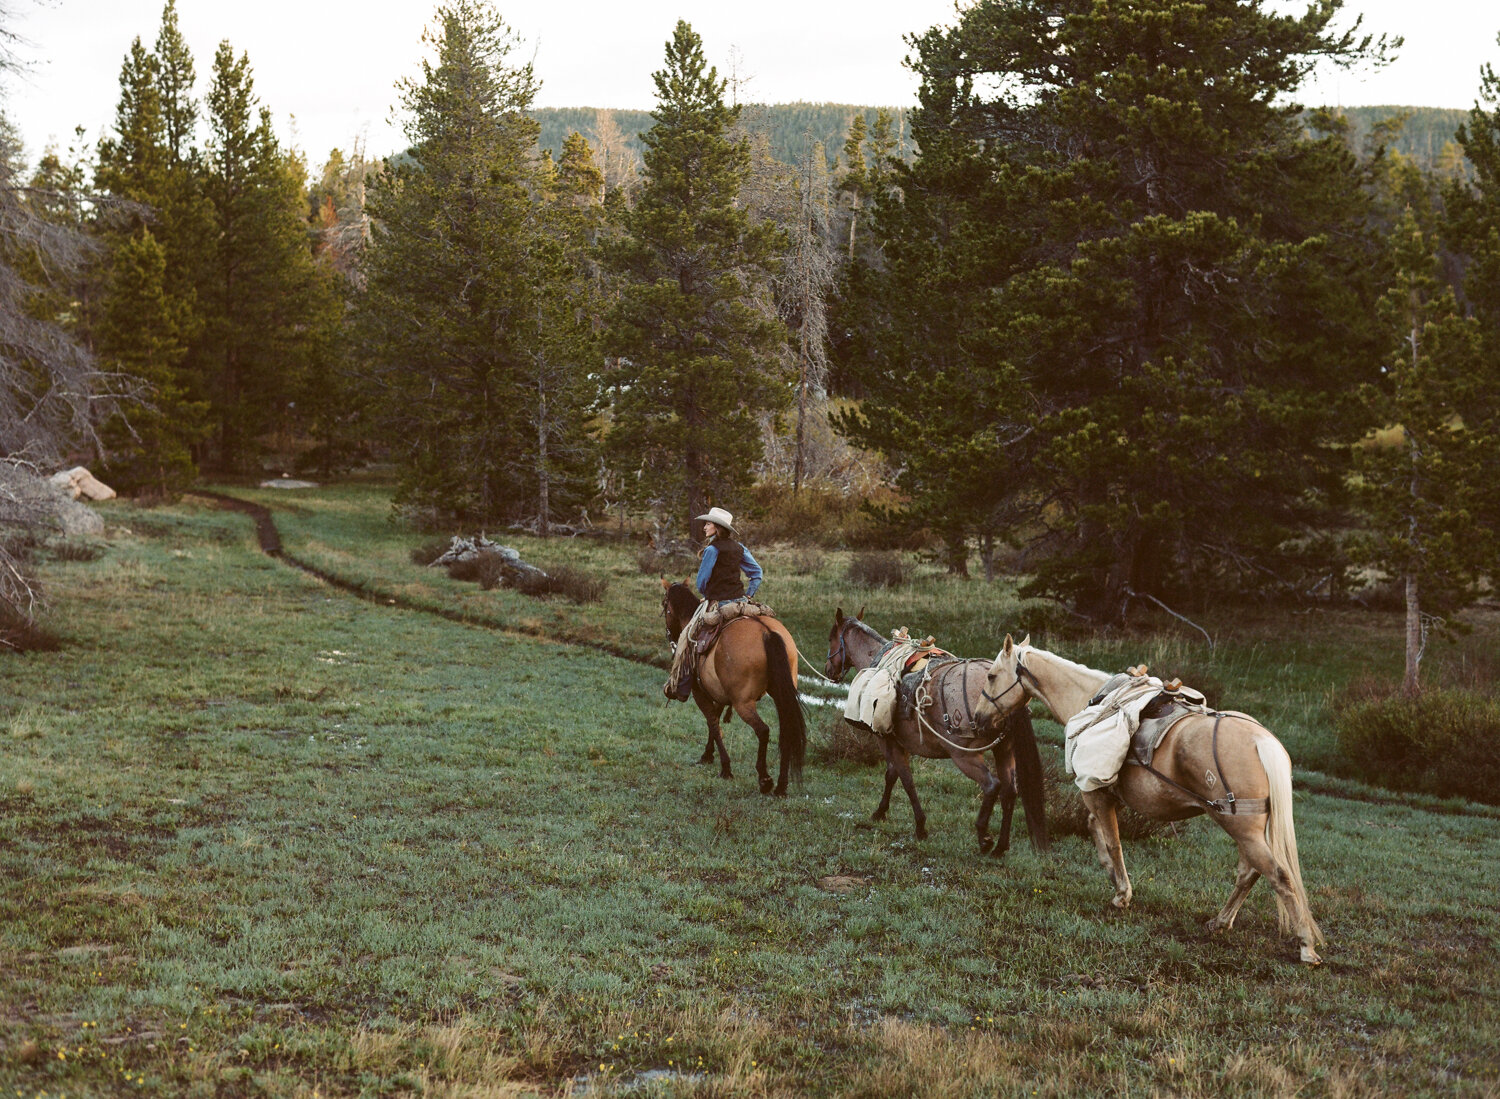 Jessie Allen— Wyoming outdoorswoman, manager of Allen's Diamond 4 Ranch, yogi, hunting guide and NOLS Instructor— packing out for a day in the Wind River Mountains.